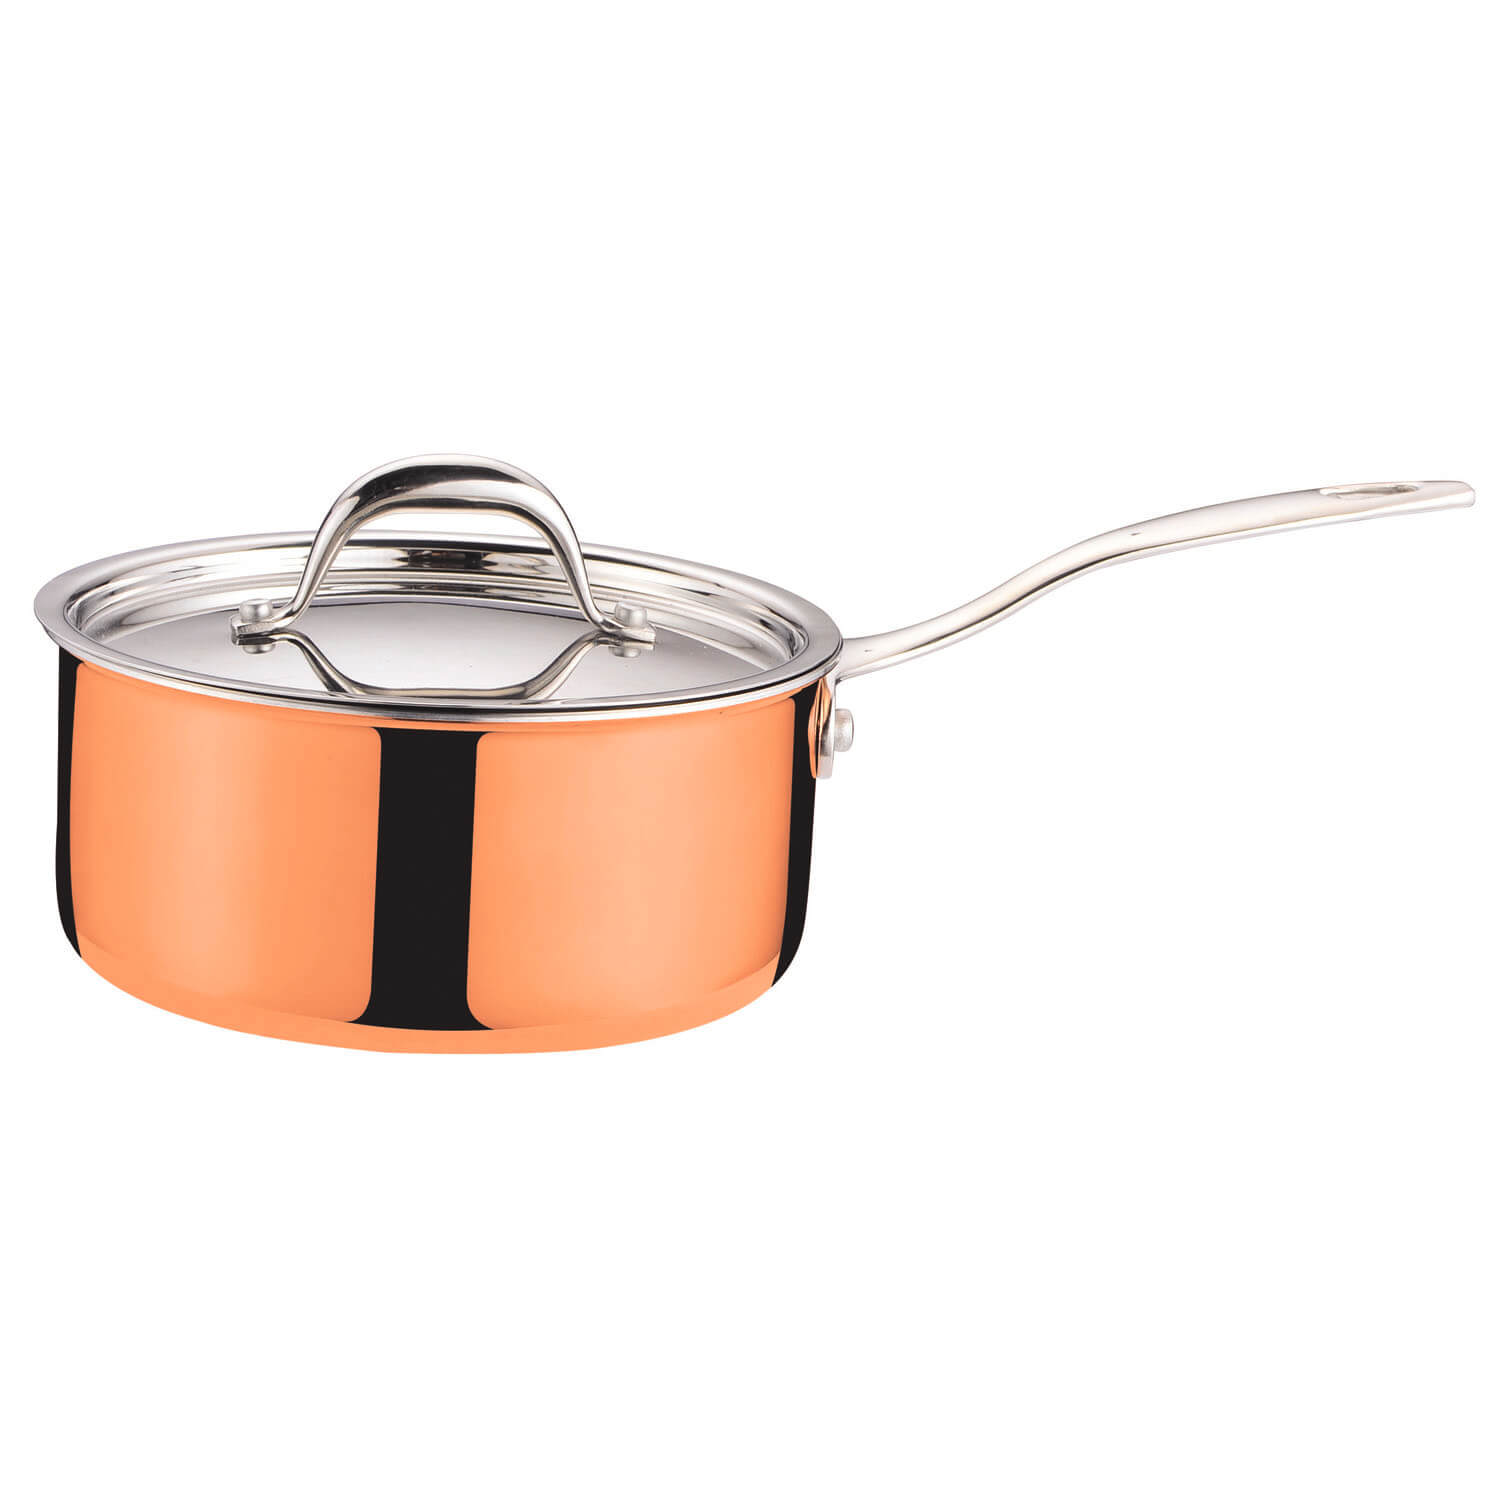 What Size Sauce Pots For Home Kitchen